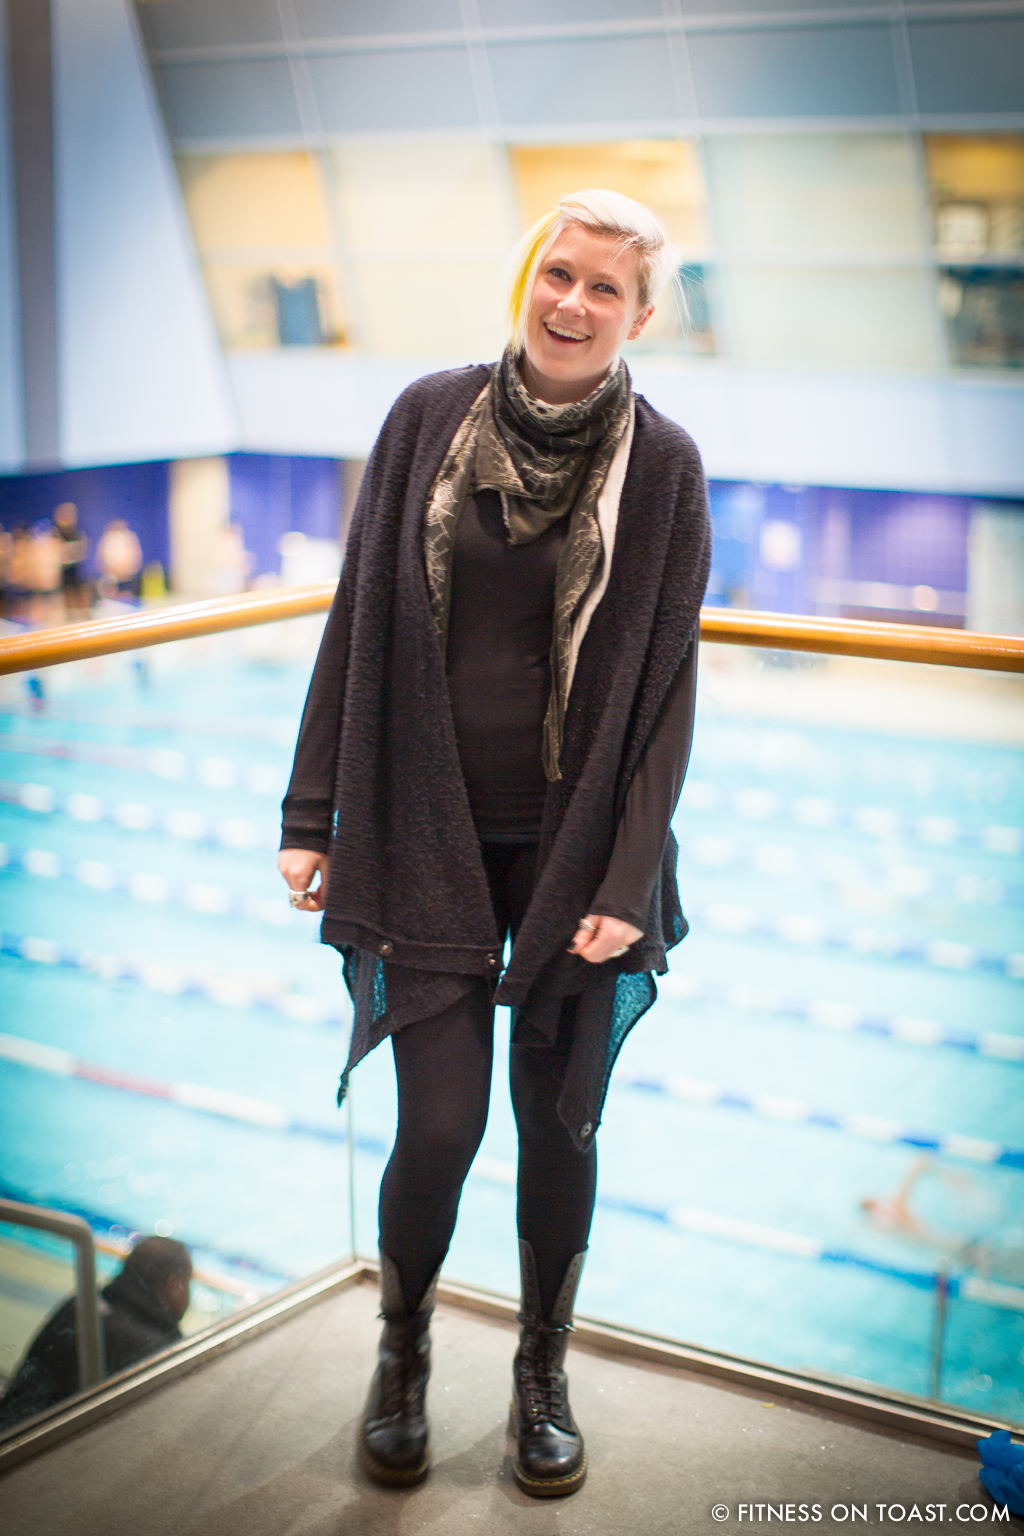 Faya Fitness On Toast Swim Lesson Update Sport Relief Comic Charity Campaign 2014 Swimathon Olympic Blog Excercise Blogger-2